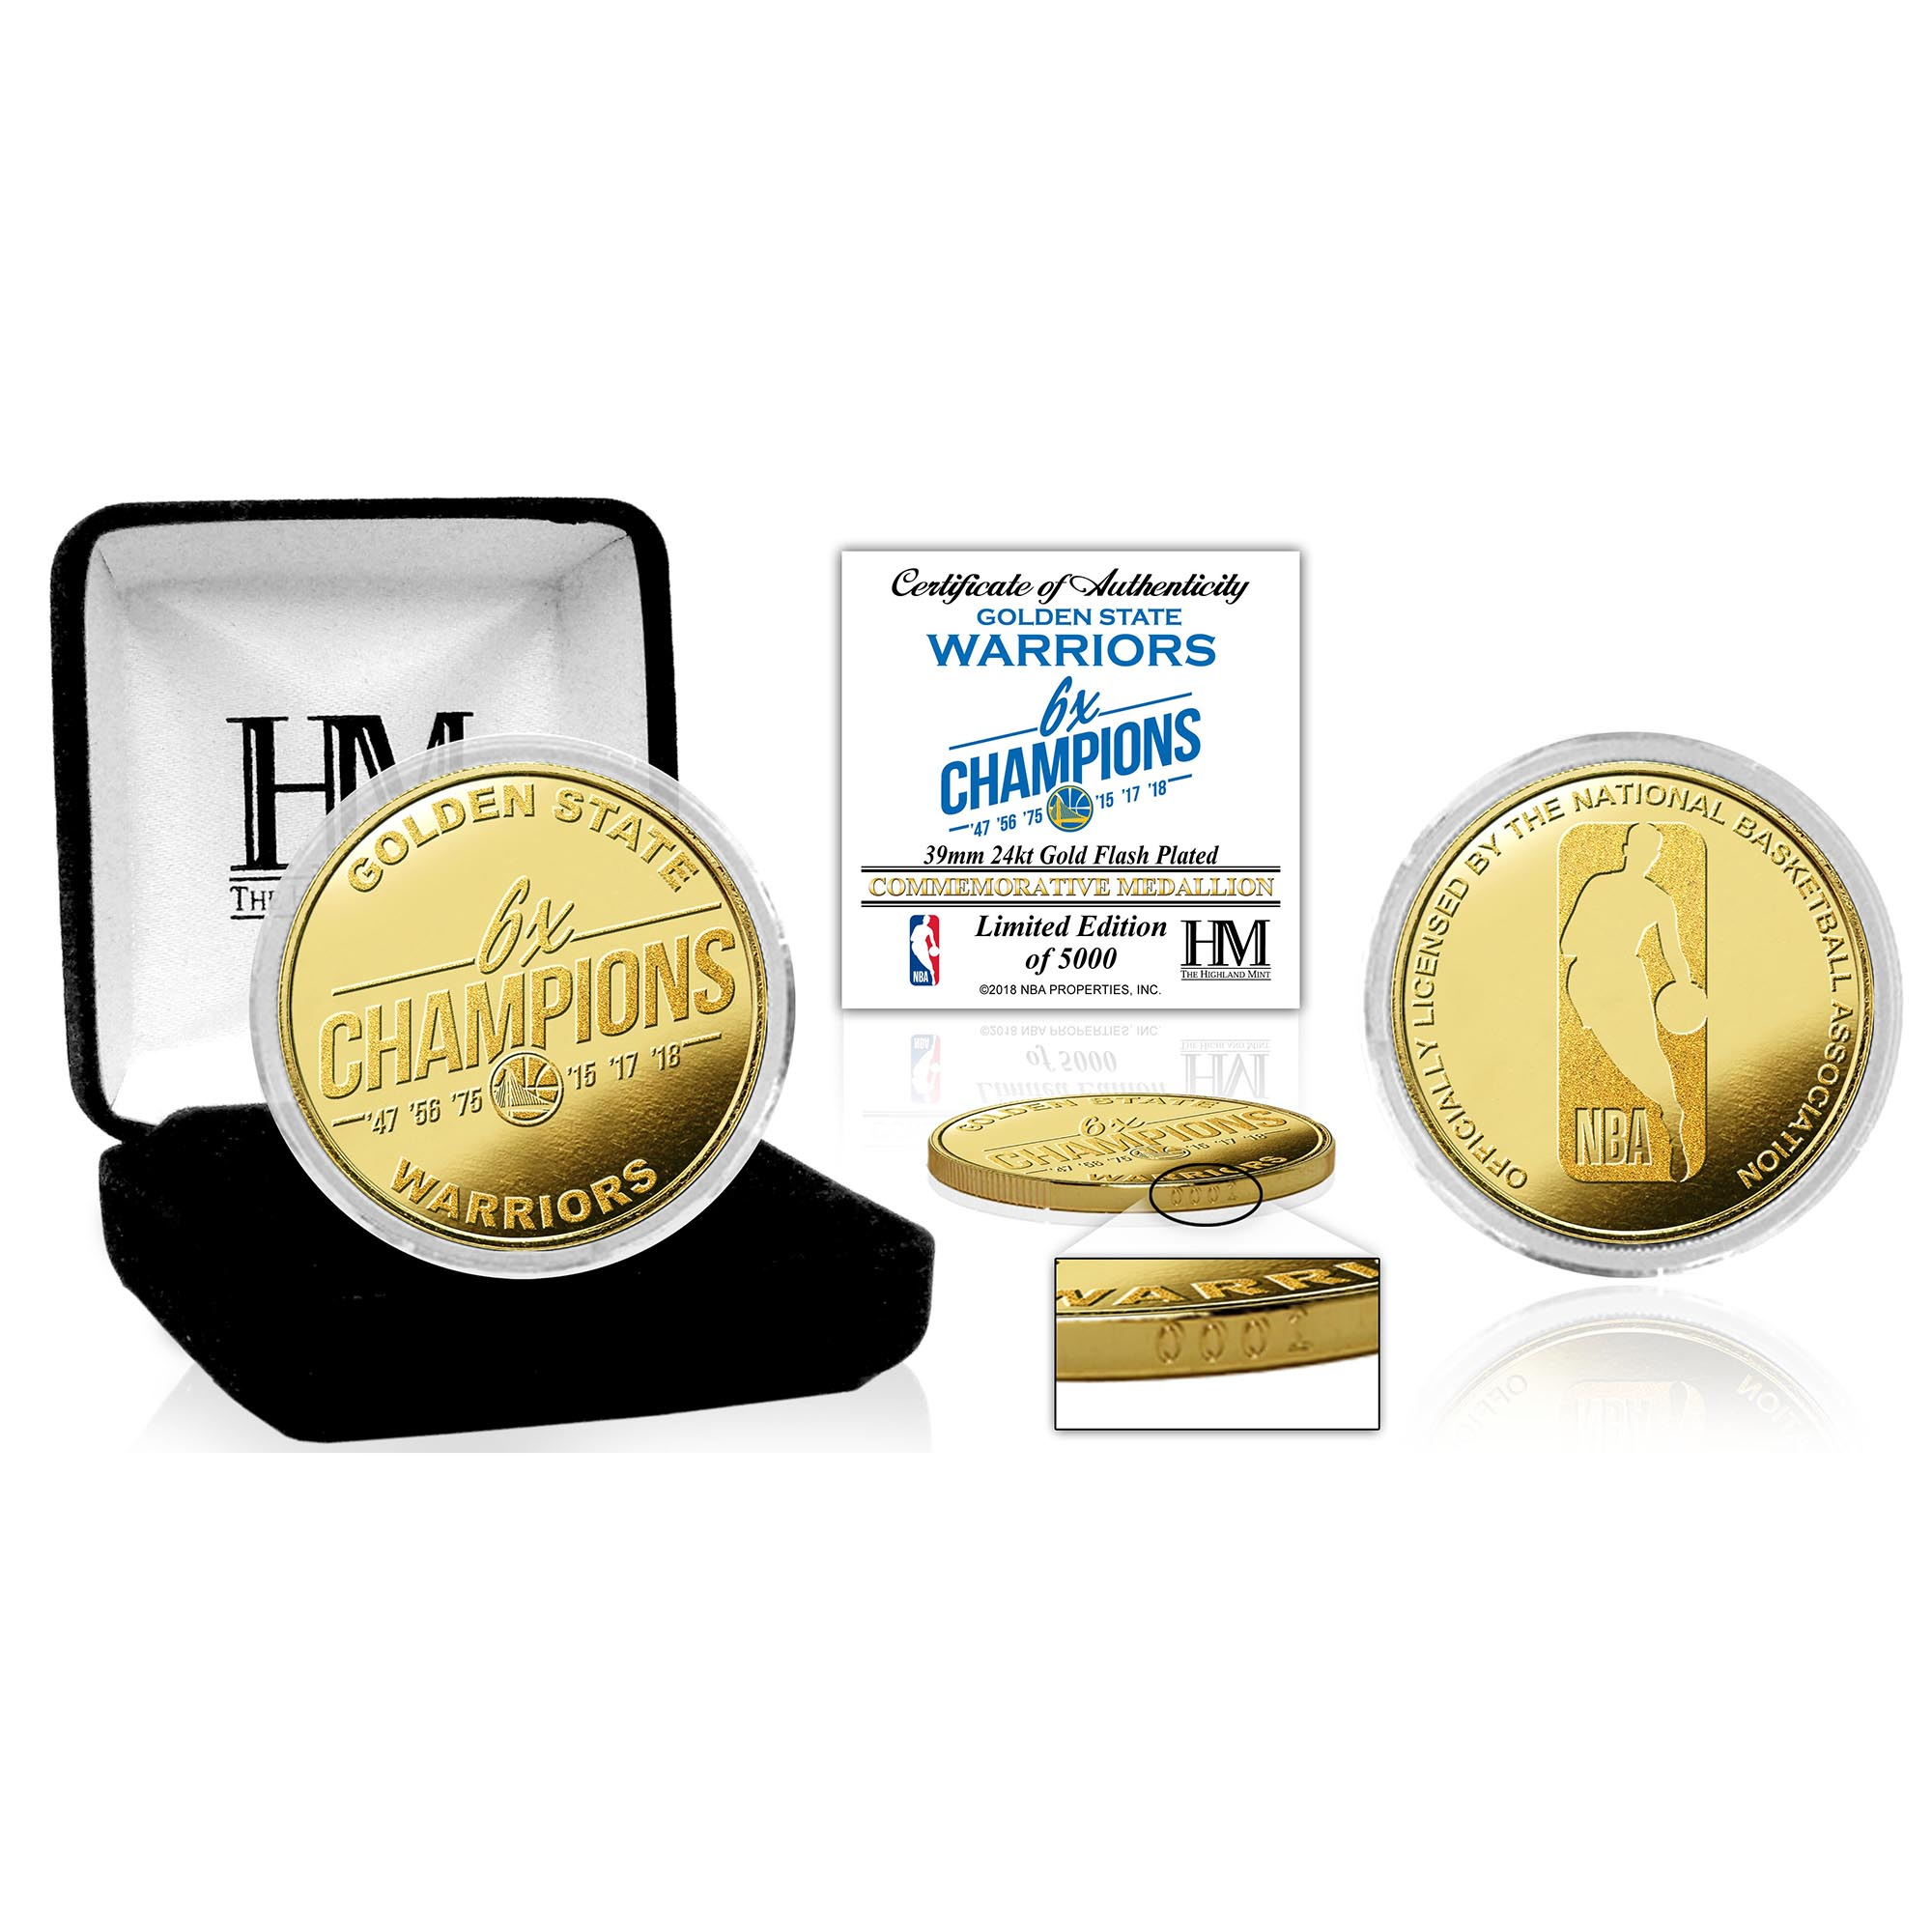 Golden State Warriors Highland Mint 2018 NBA Finals Champions Multi-Champs Gold Mint Coin - No Size